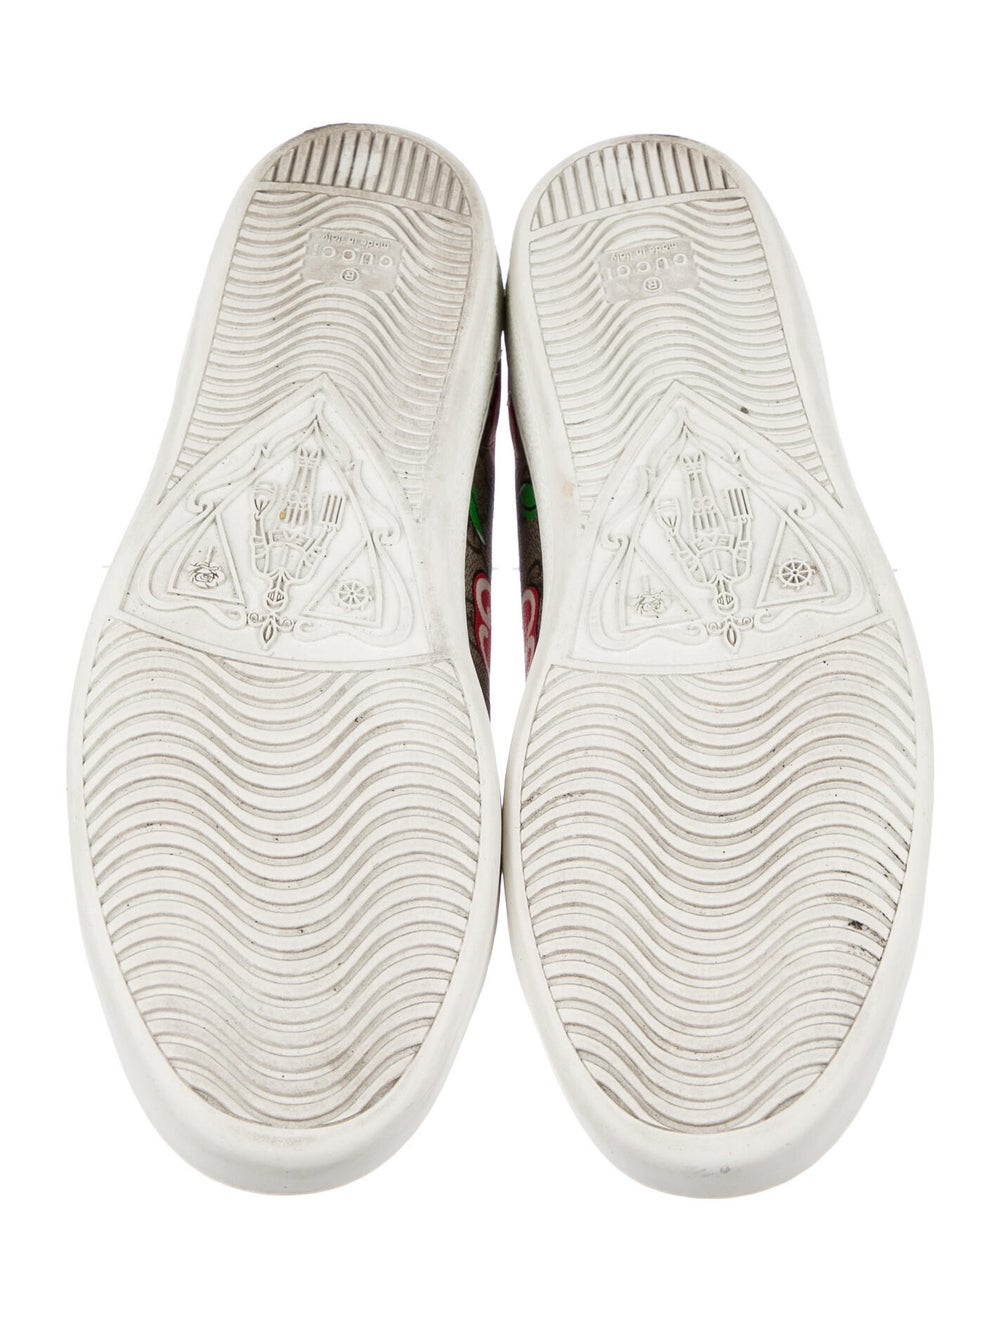 Gucci GG Apple Sneakers Sneakers - image 5